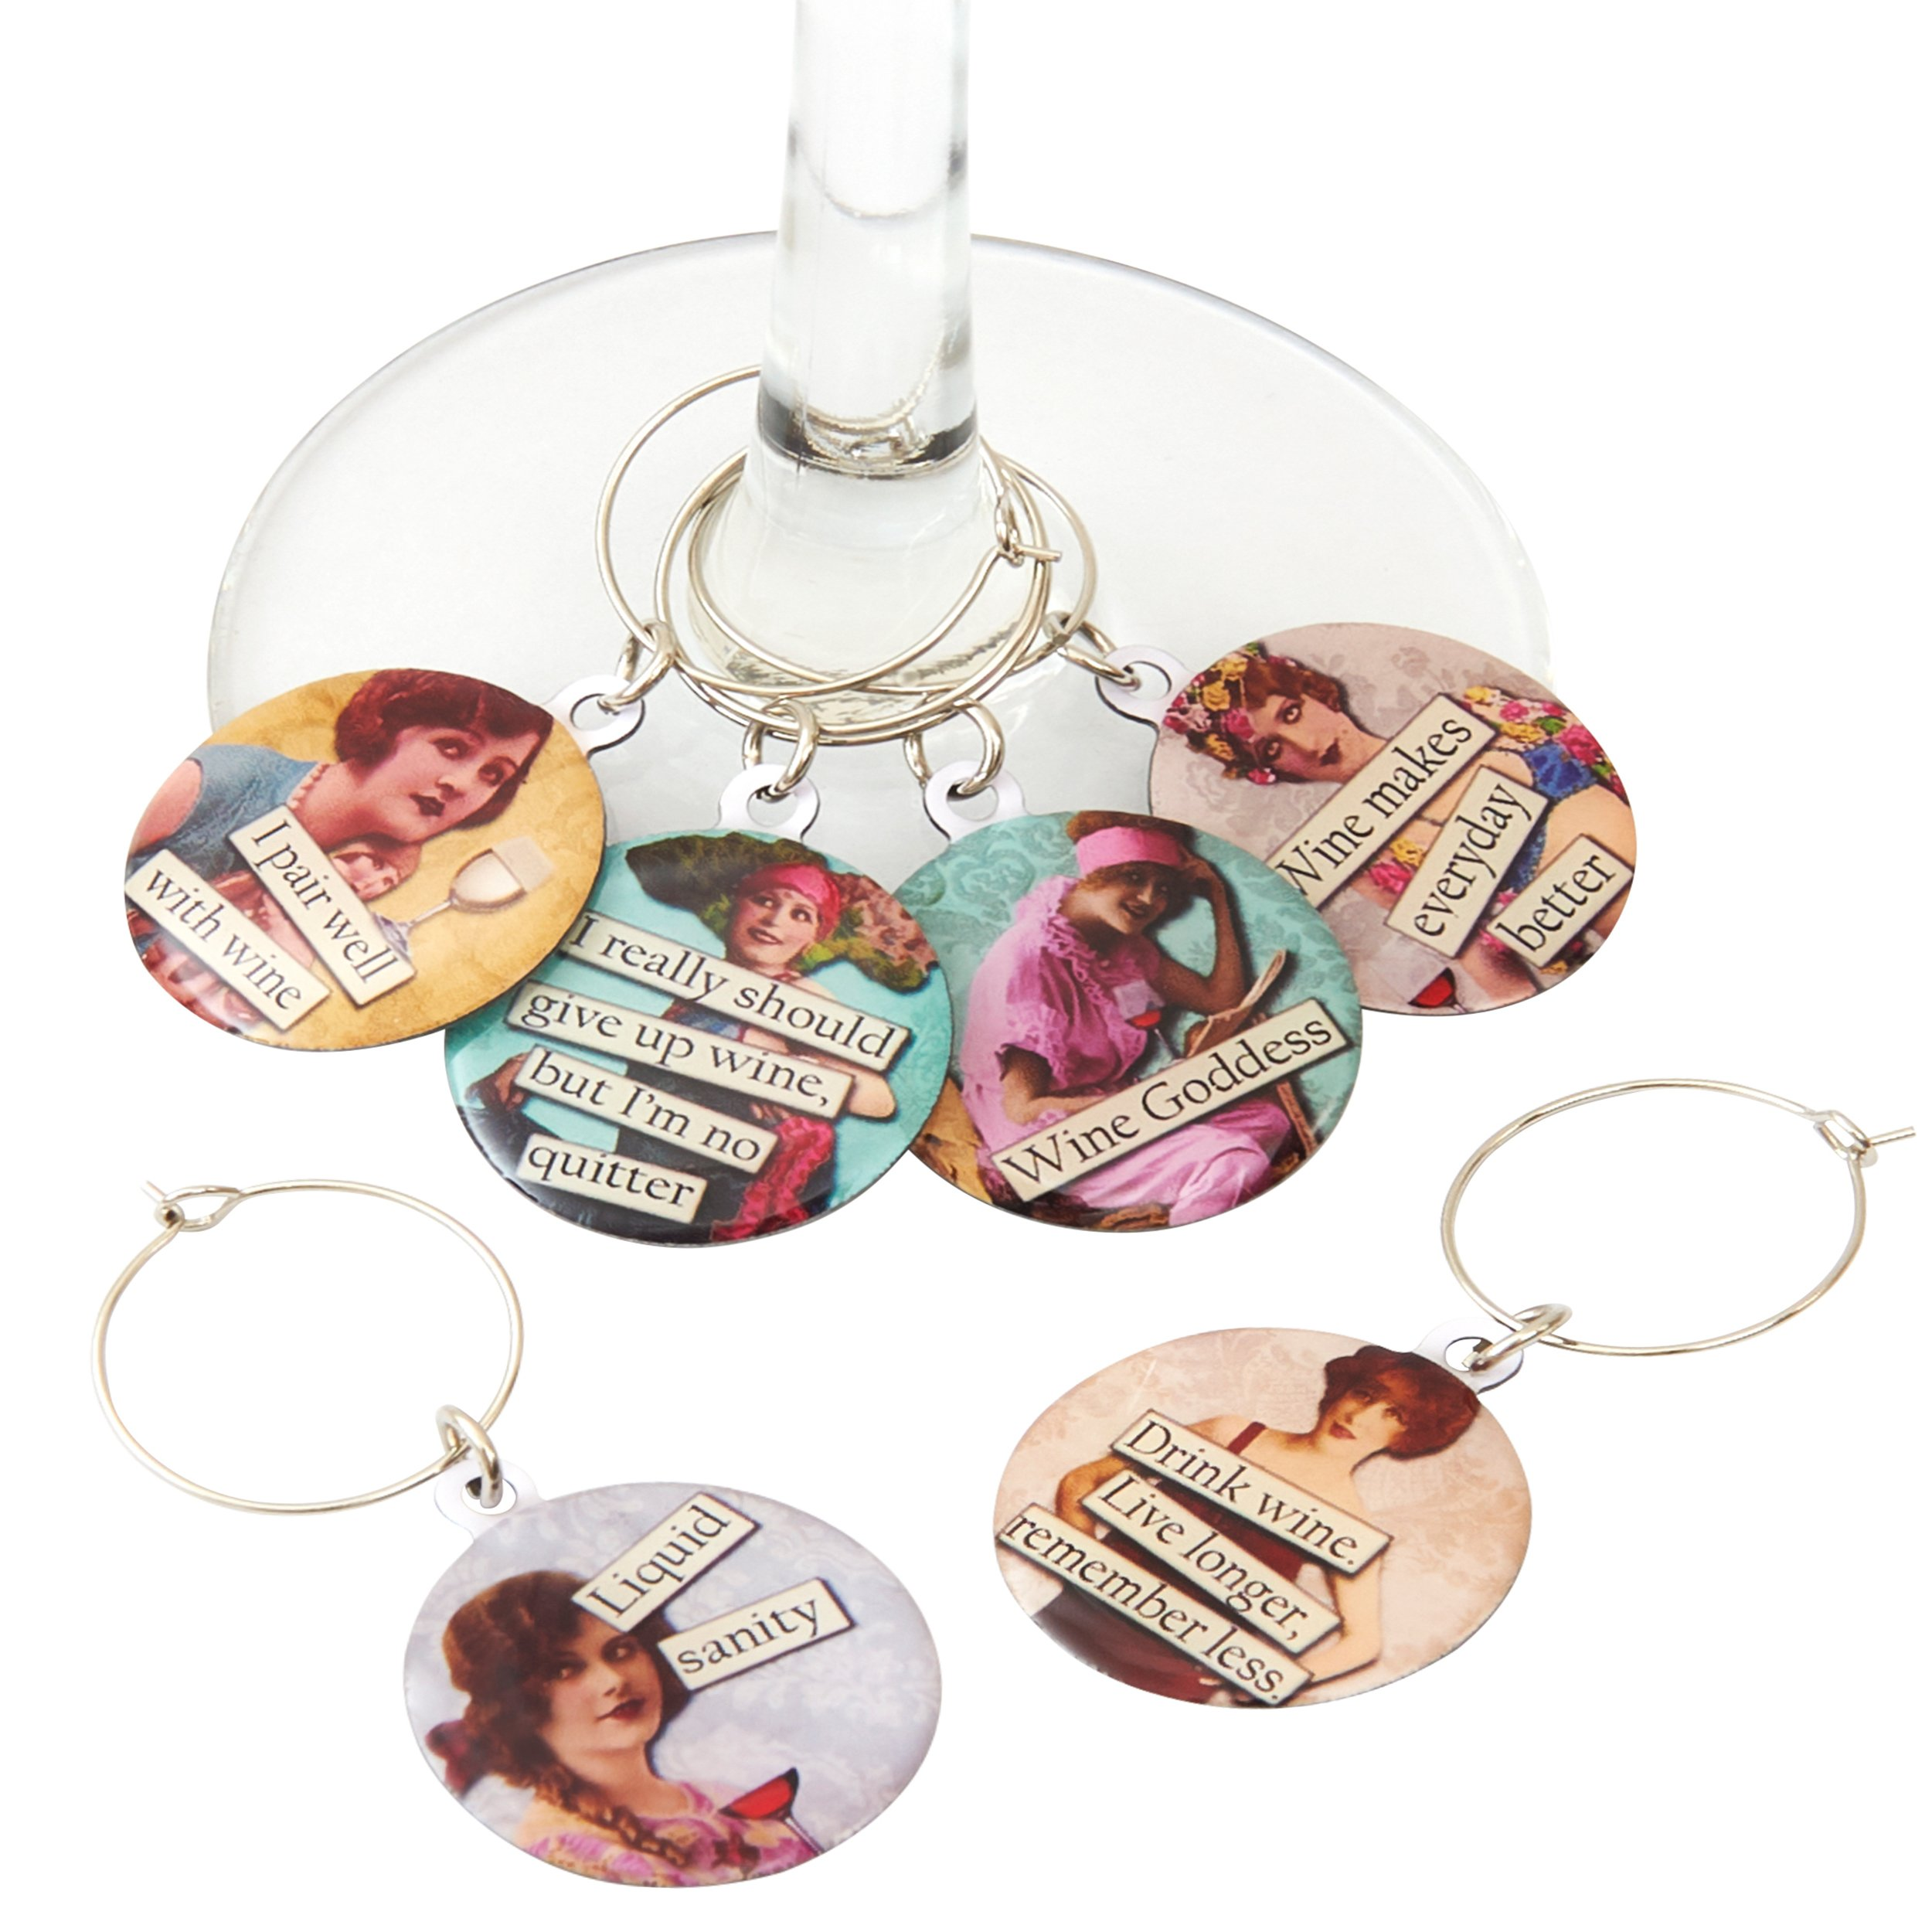 Funny Vintage Women Wine Glass Charms - Set of 6 Wine Tags. Always know which glass is yours with these wine markers! by Savvy Design Store